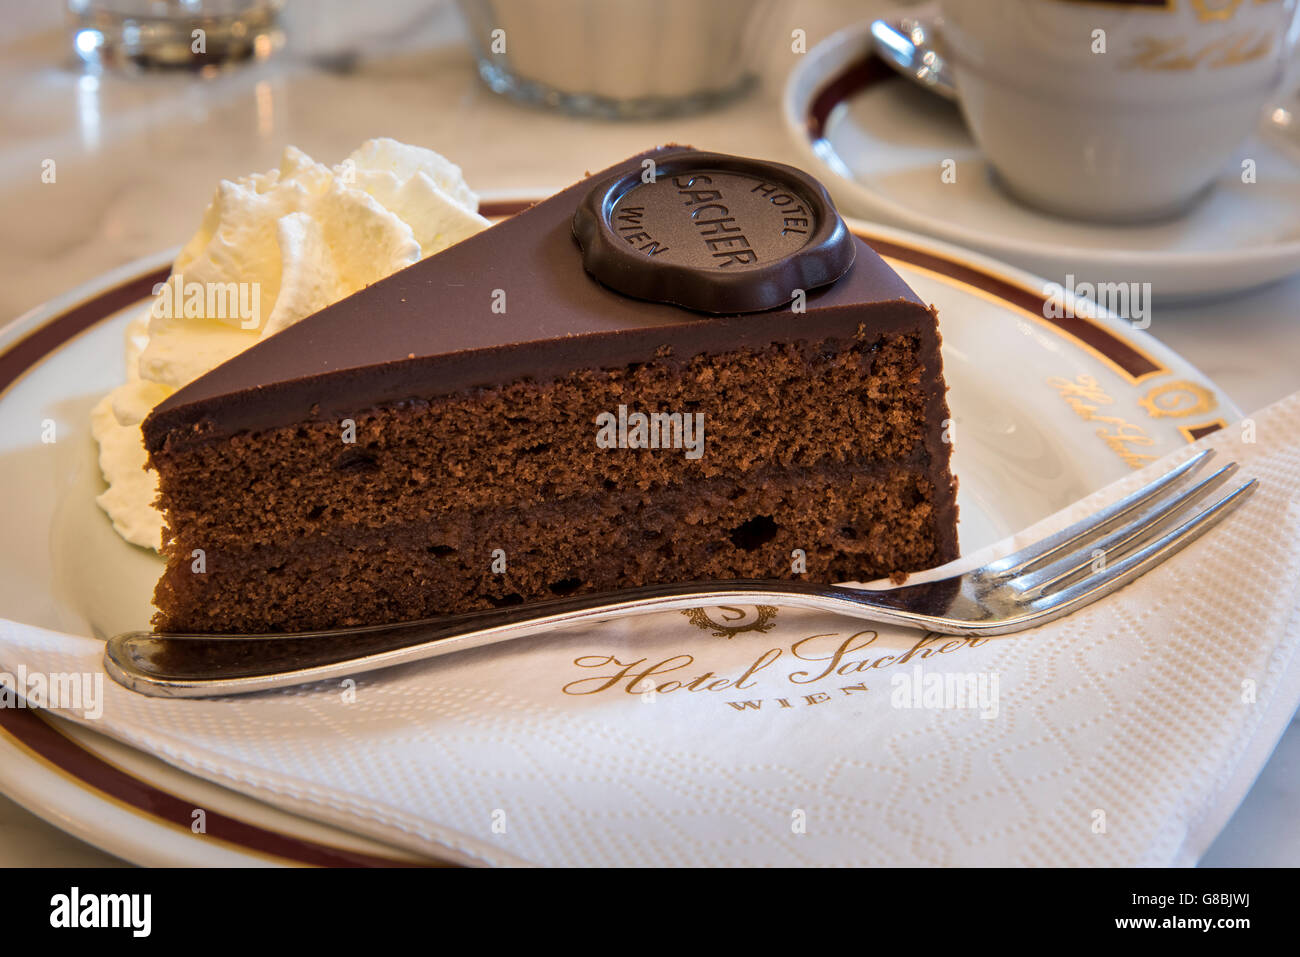 The original Sachertorte chocolate cake served at Cafe ...